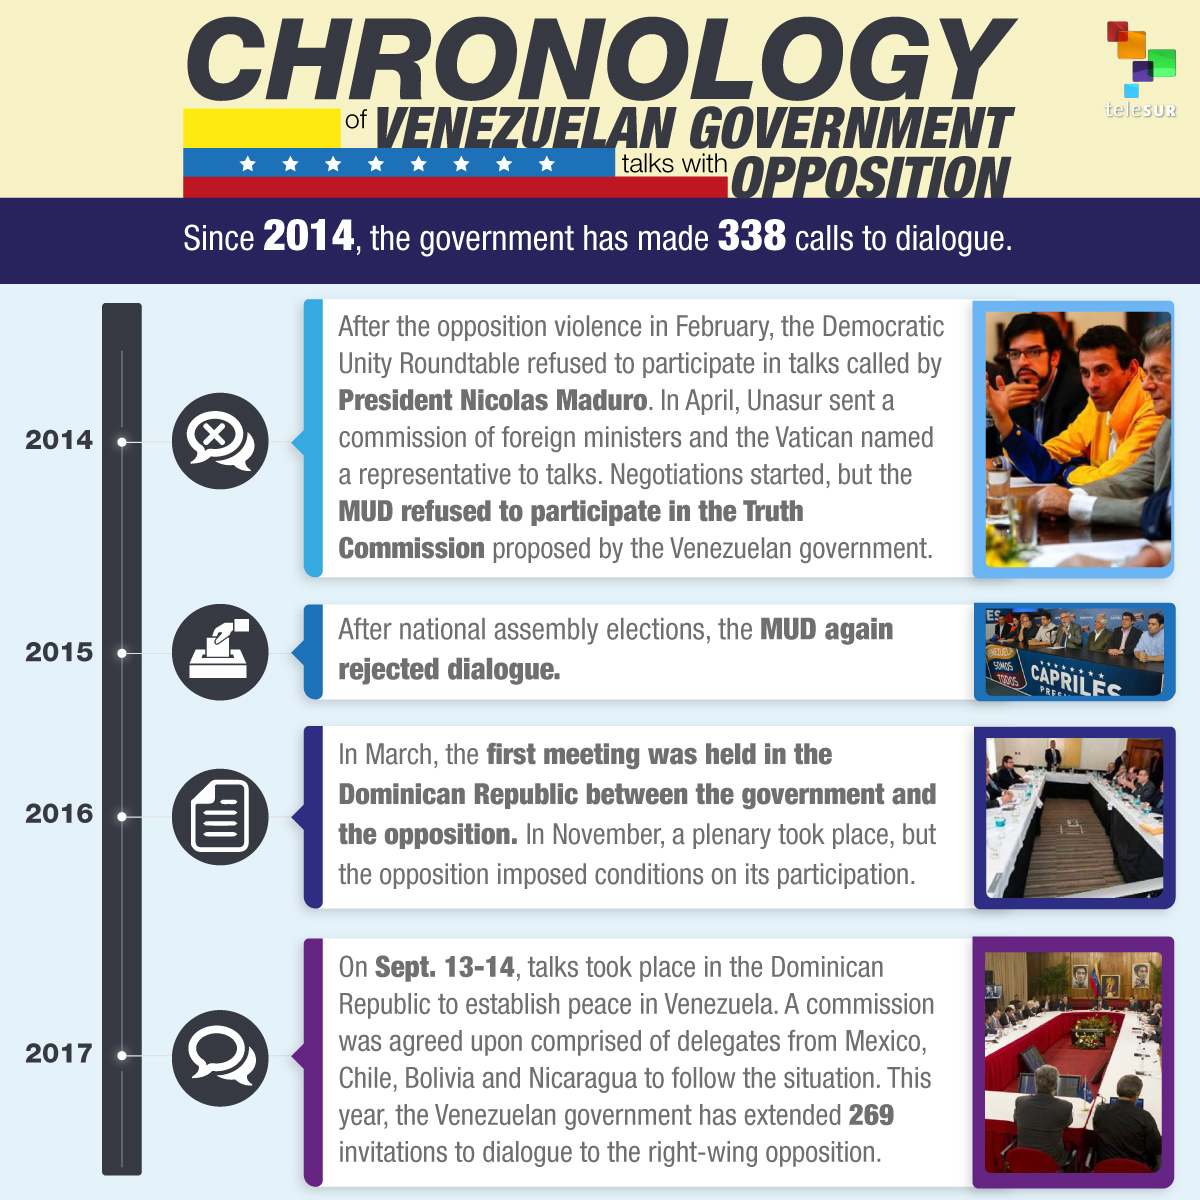 Chronology of Venezuelan Government Talks with Opposition